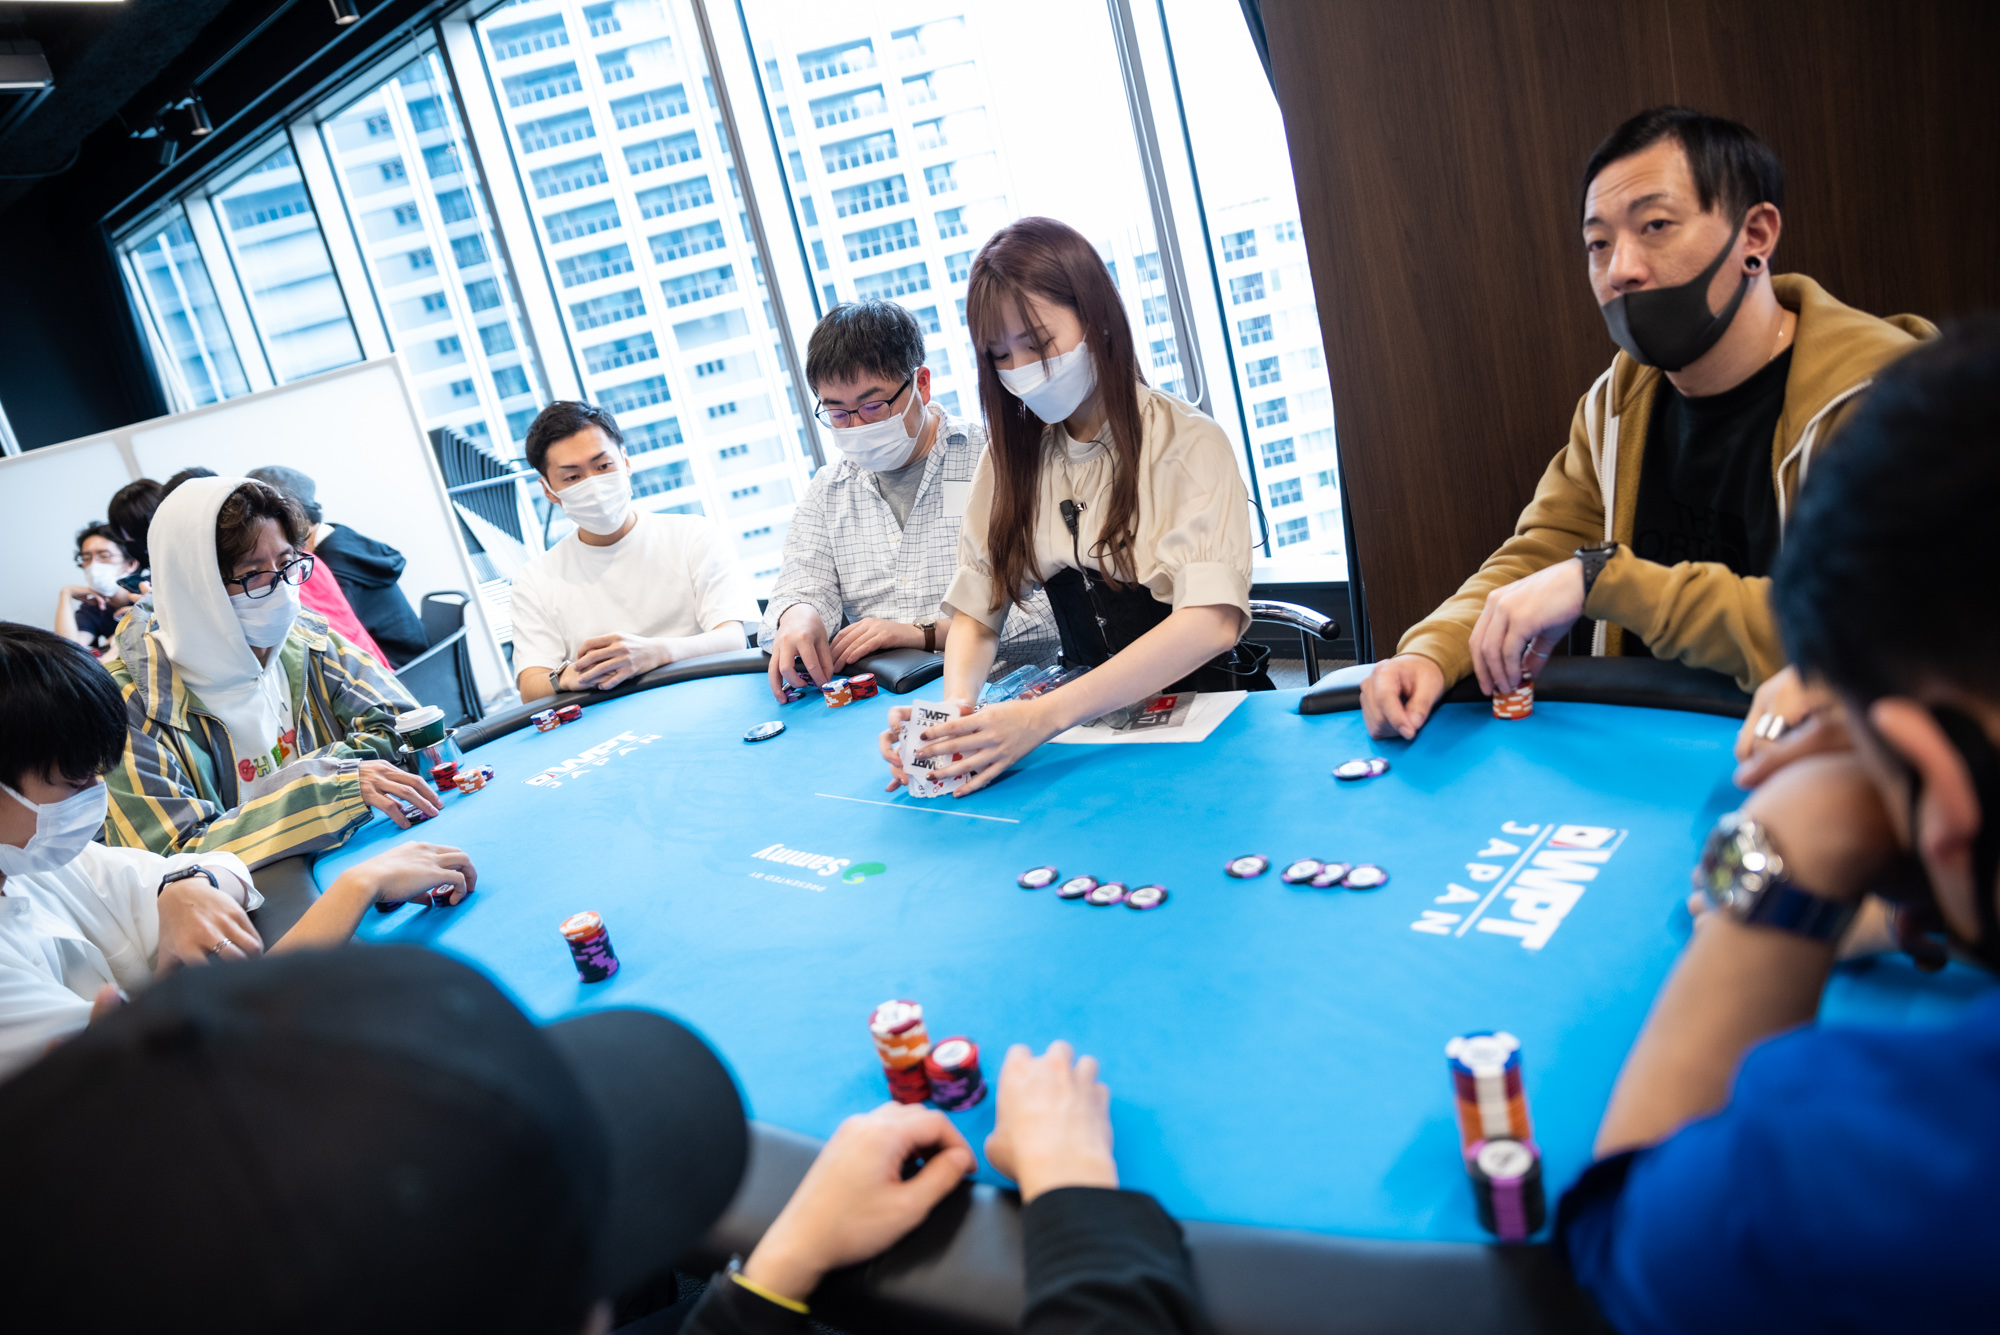 WPT Japan  2021 to blitz player record. Qualifiers end September 16